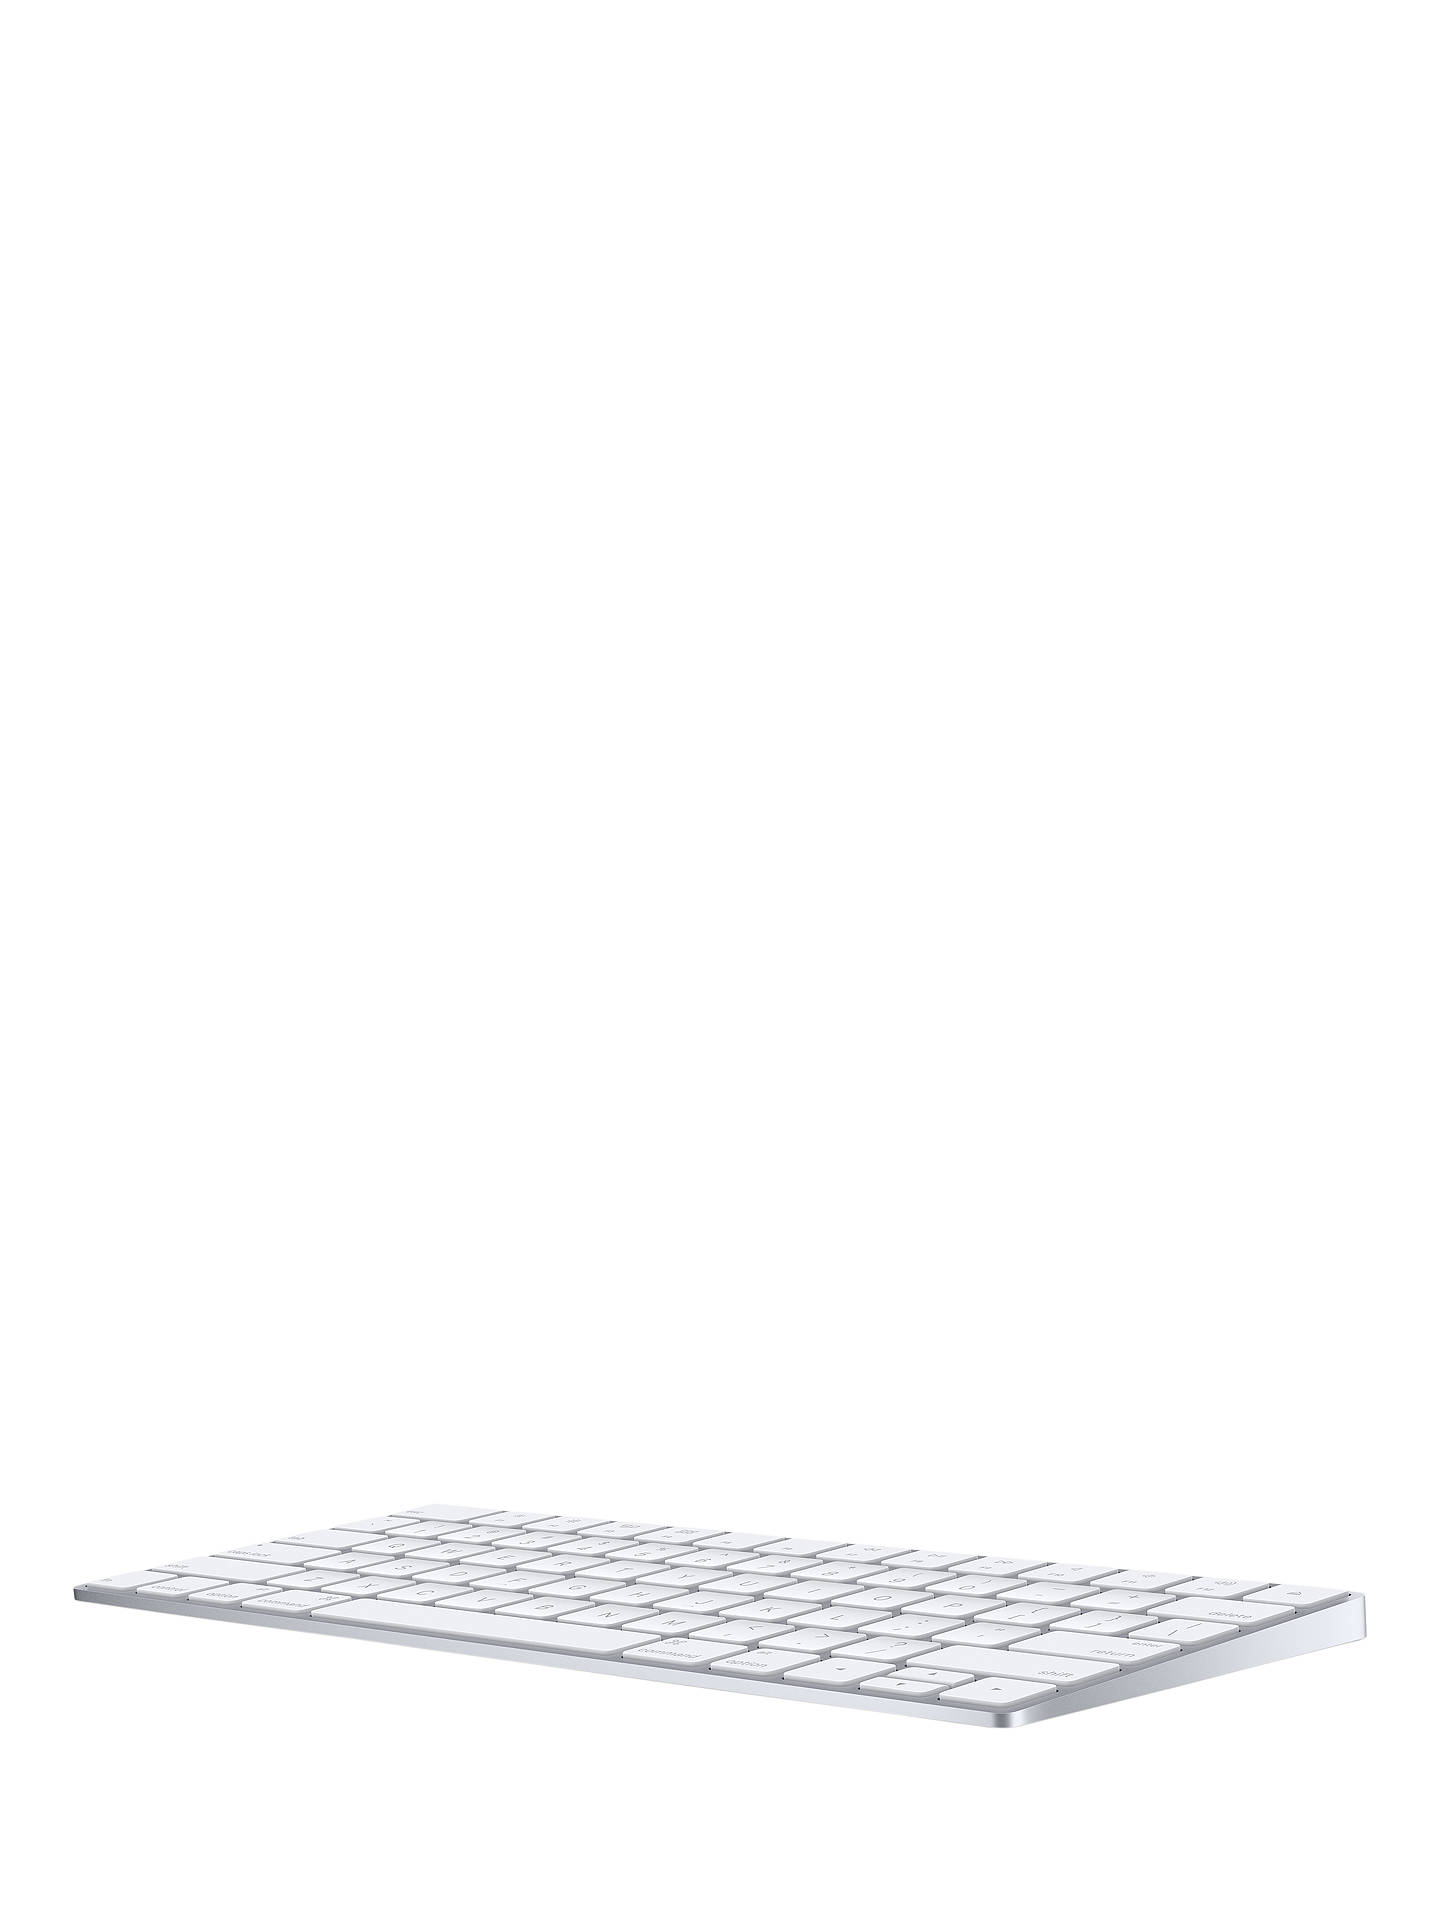 Buy Apple  MLA22B/A Magic Keyboard, British English Online at johnlewis.com